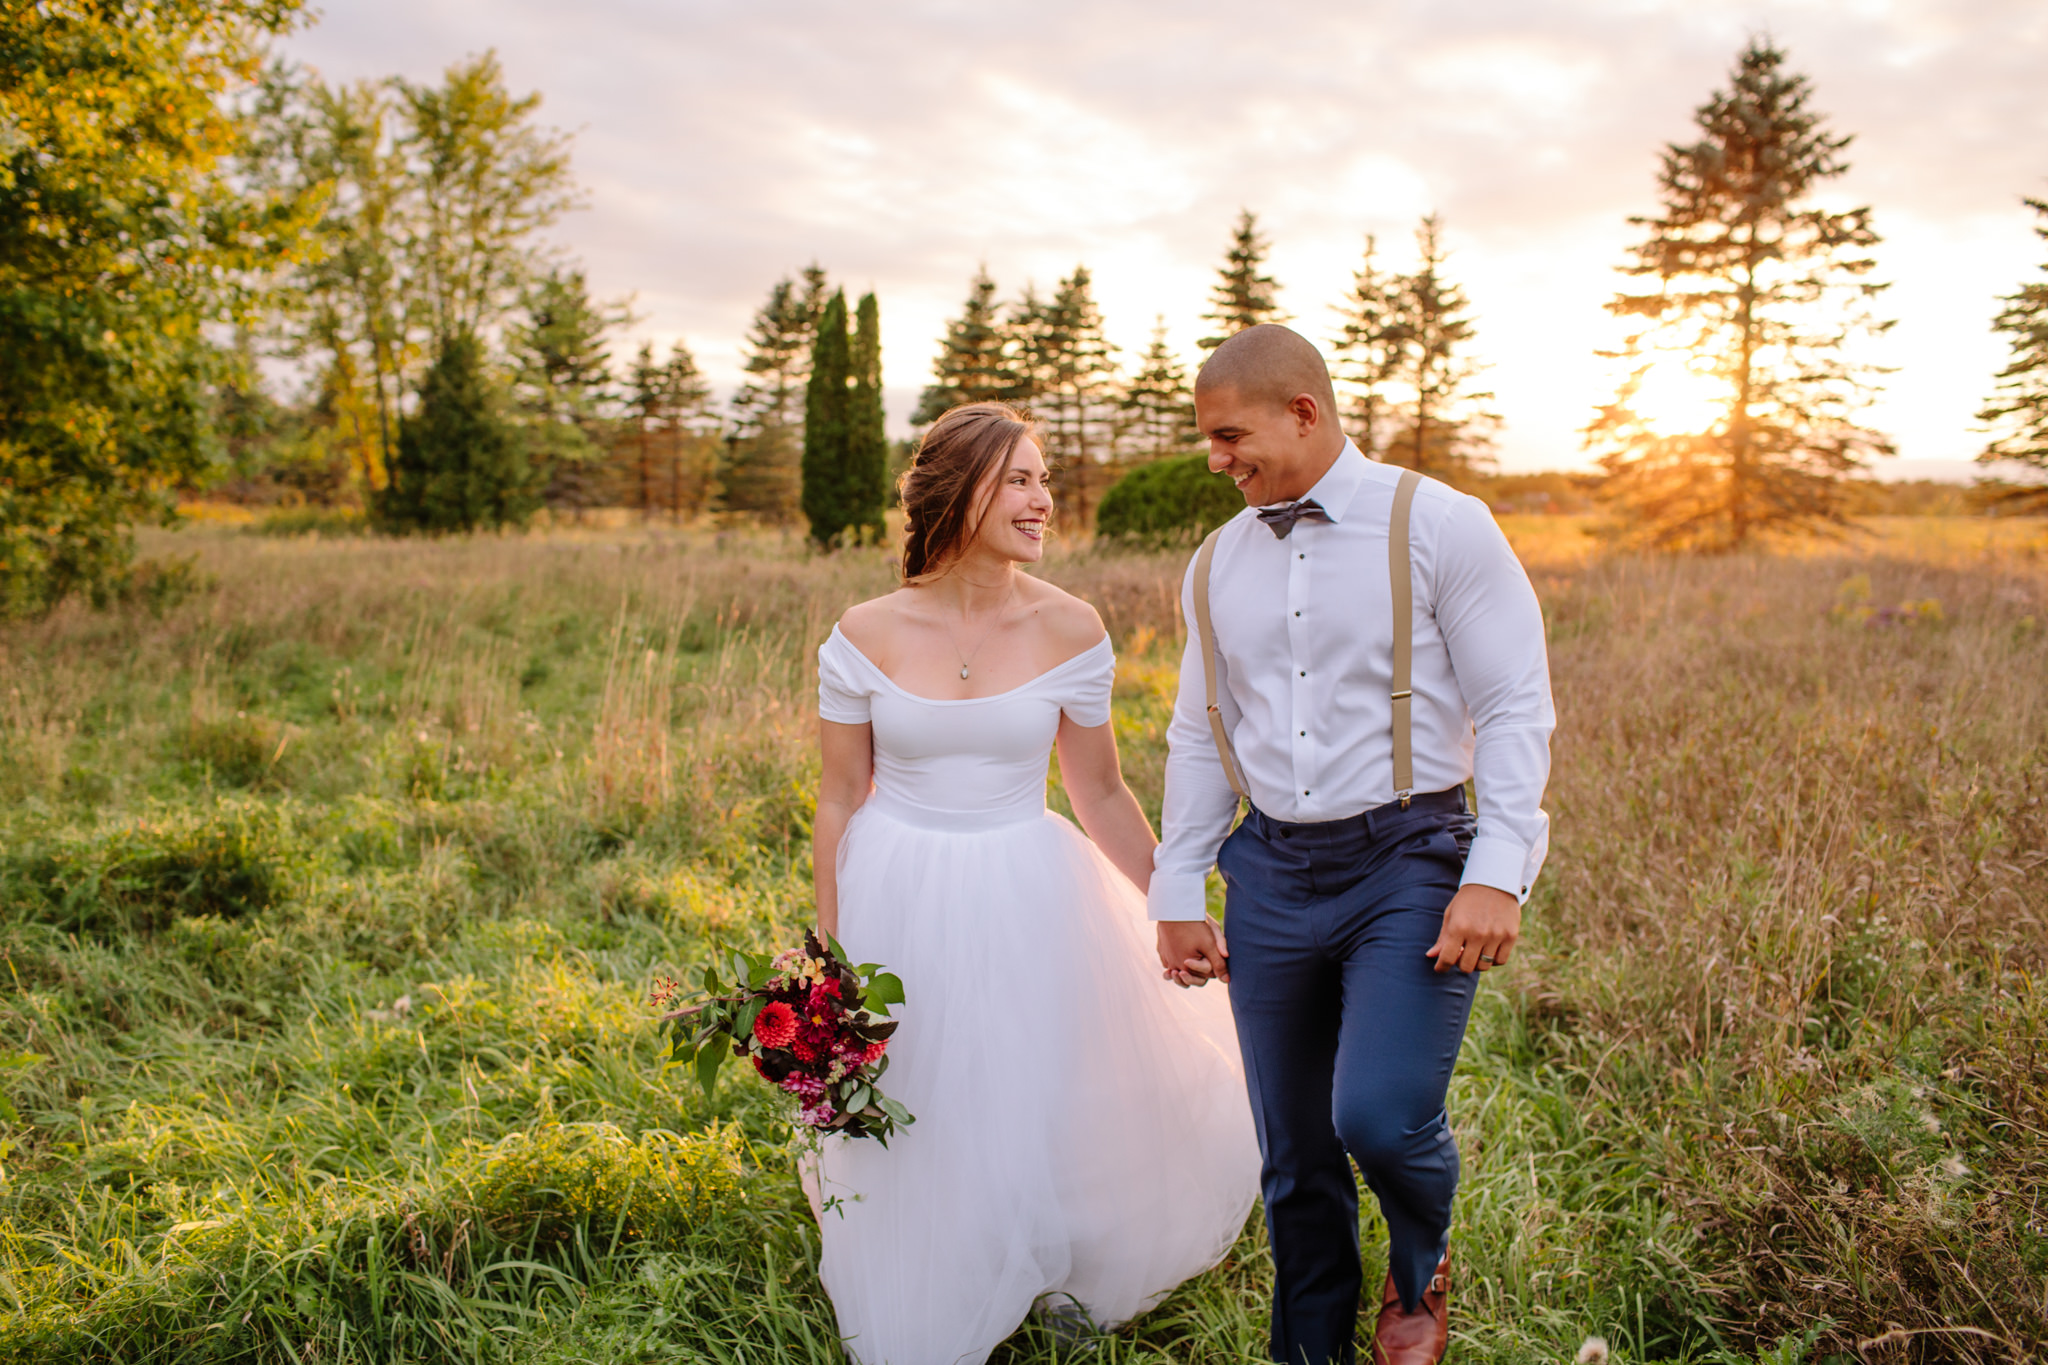 bride and groom holding hands walking through a field